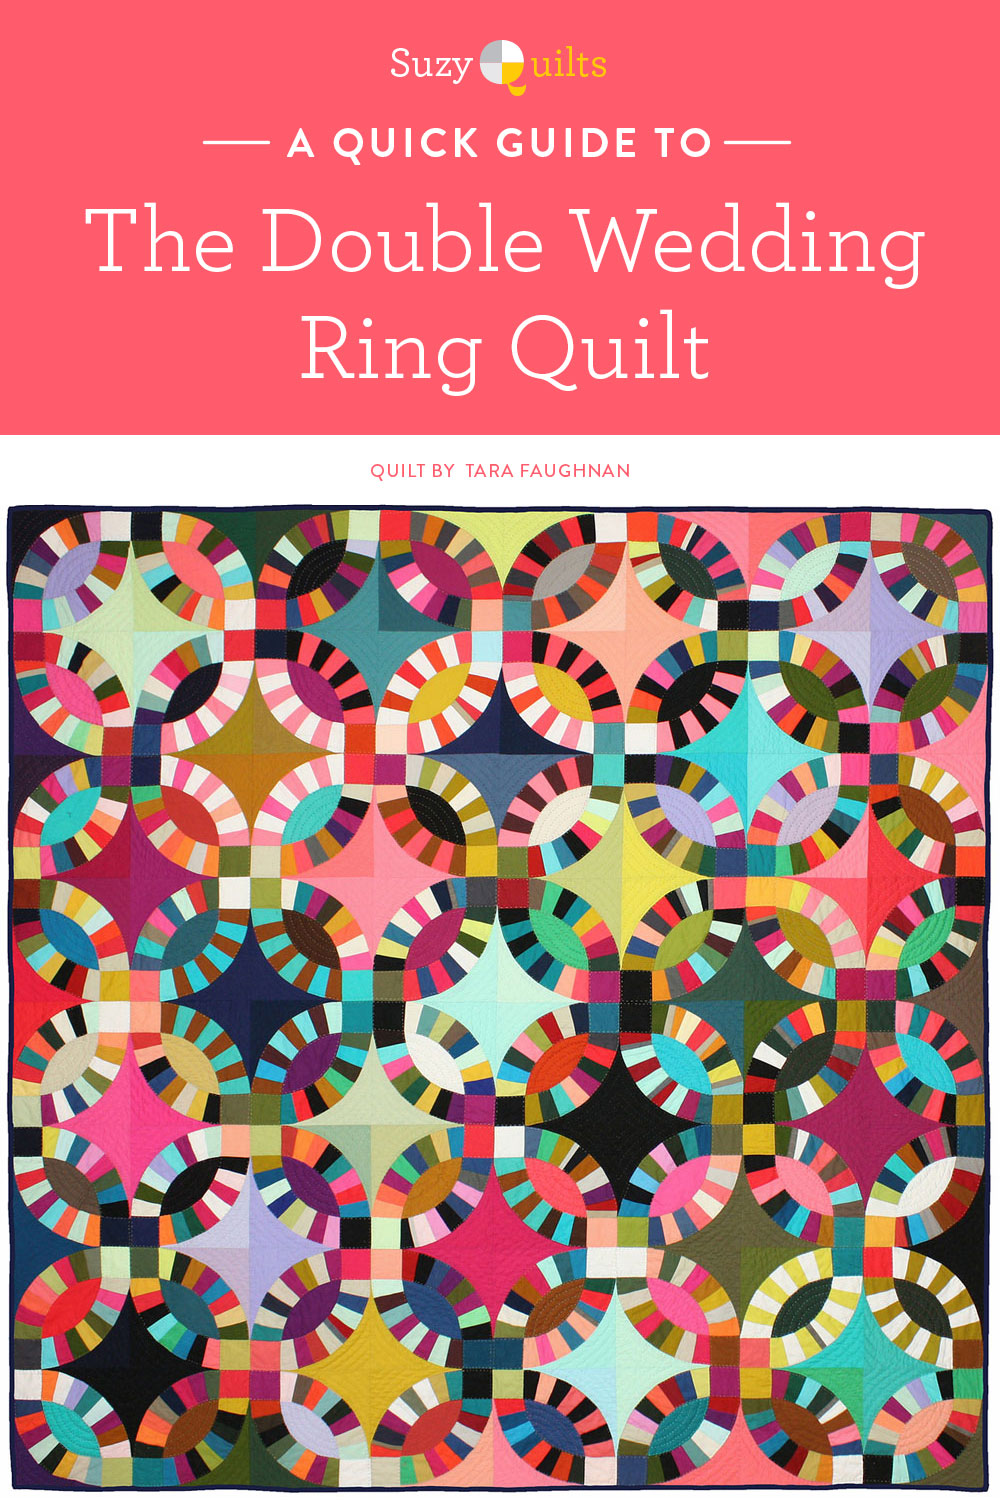 A Beautiful Romance The Double Wedding Ring Quilt Suzy